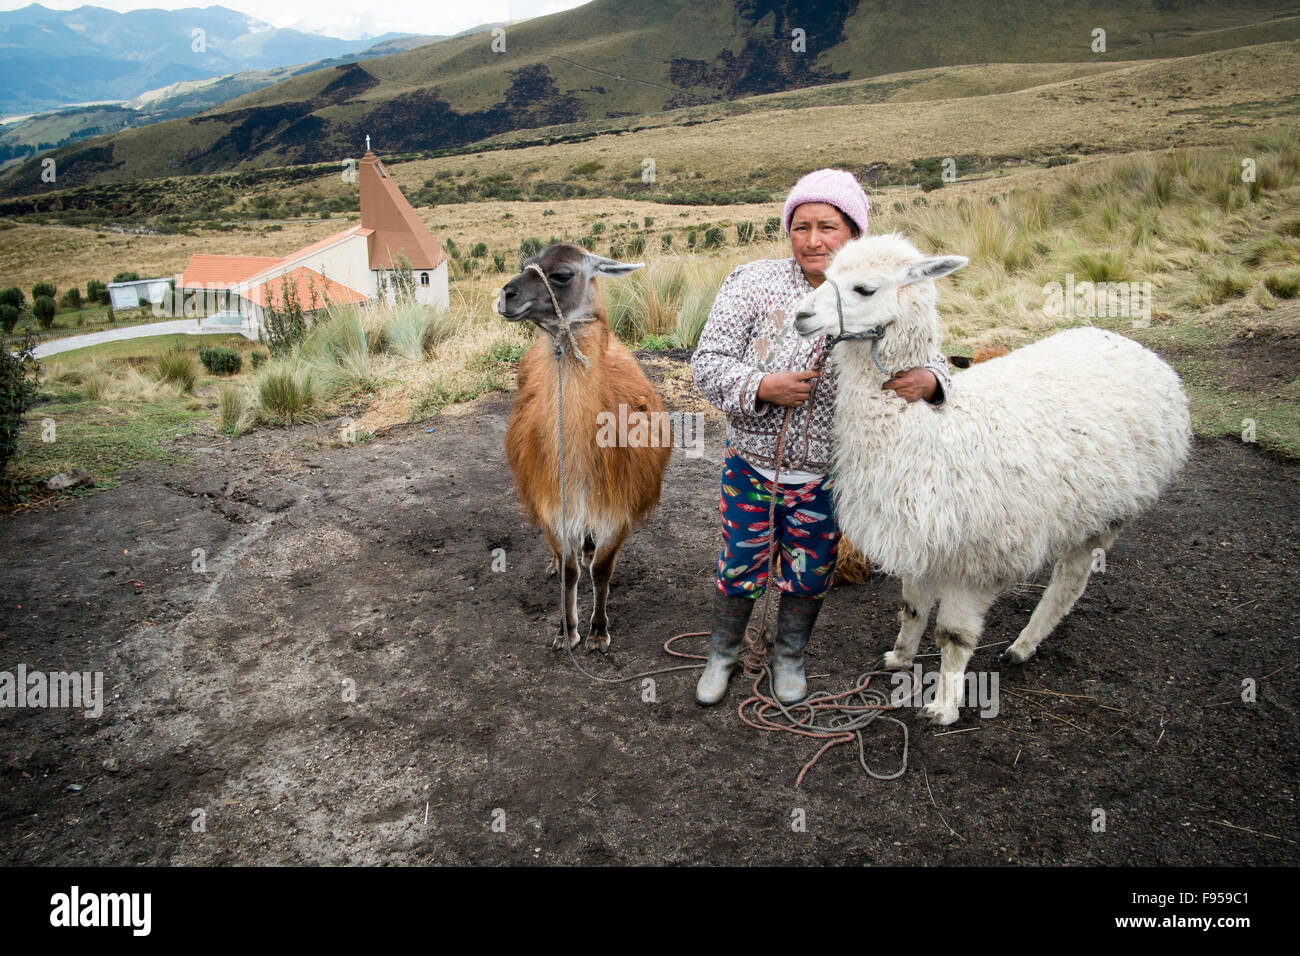 East side of Pichincha Volcano , Quito , Ecuador. A woman with her alpacas - Stock Image